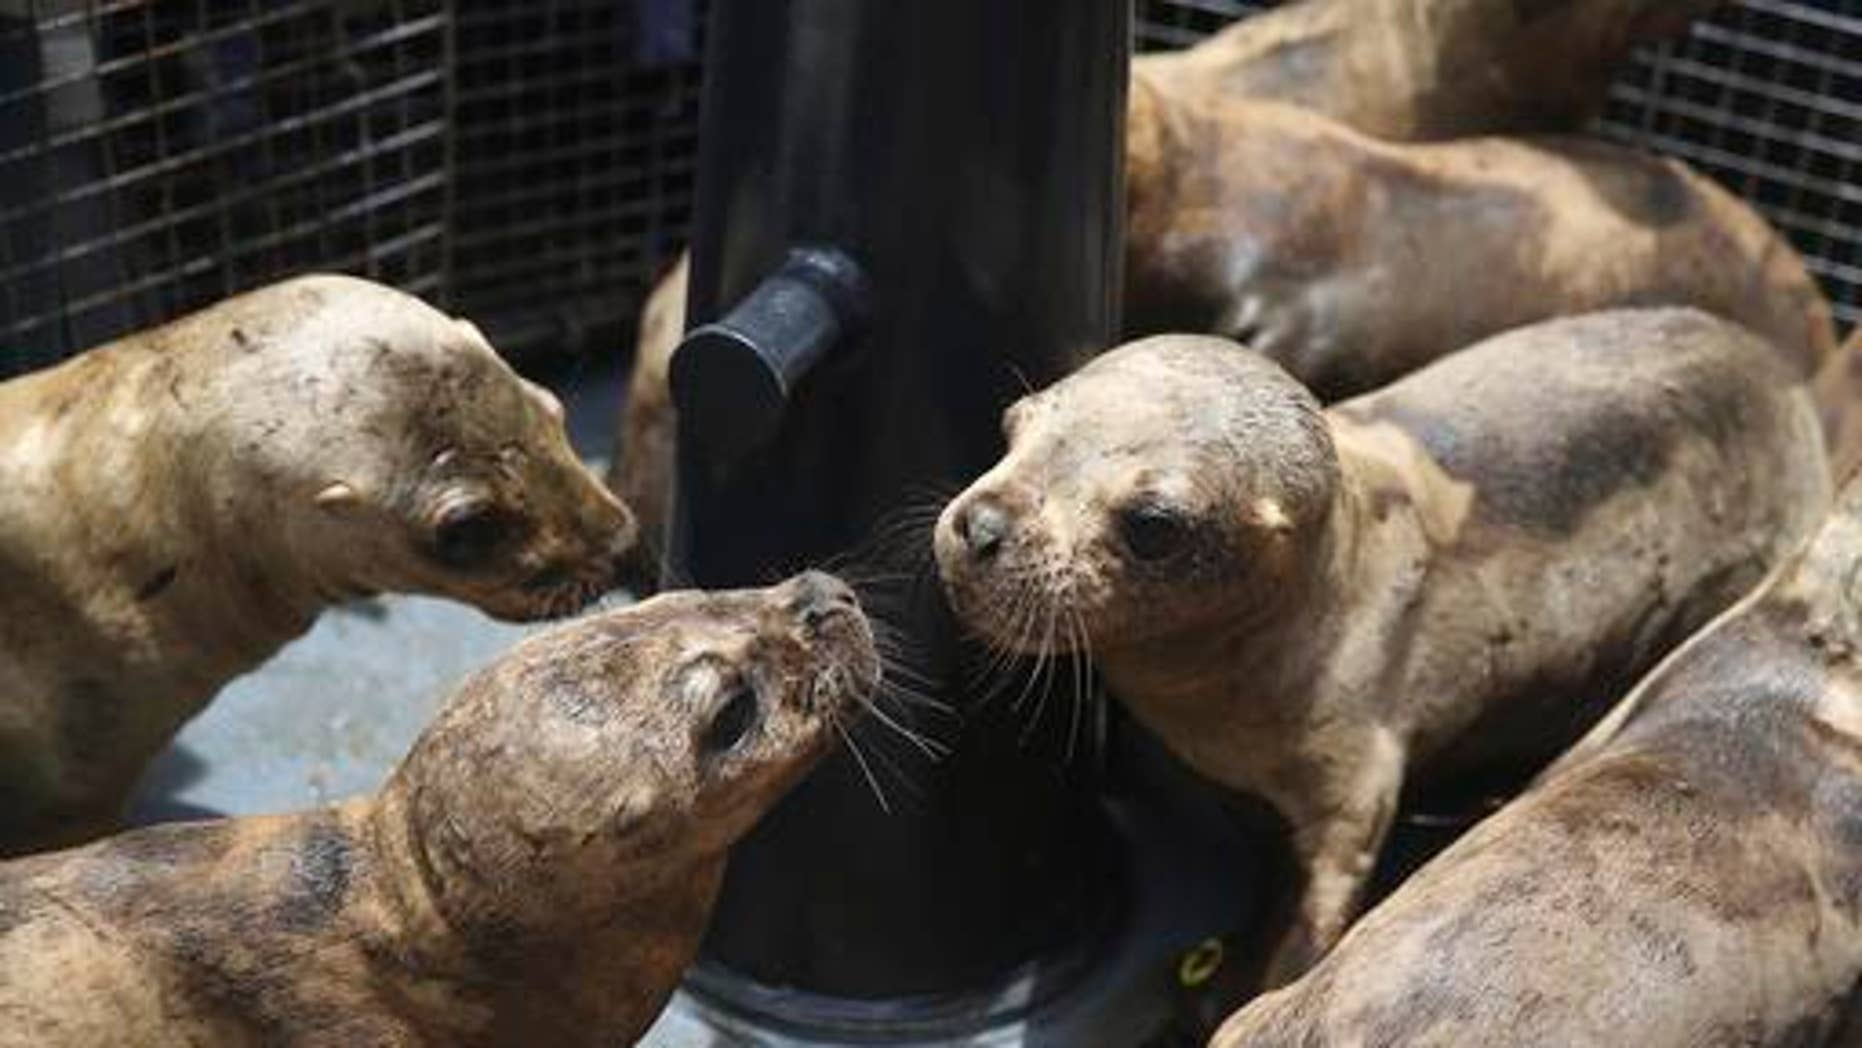 A group of young sea lions are let out of pet carriers before release into their natural habitat, in the coastal waters of the Palomino Islands, Peru, Friday, Oct. 14, 2016. Peru's Organization for Research and Conservation of Aquatic Animals, or ORCA, brought nine sea lions back to health and released them into the sea near a reserve where hundreds of others sea lions live on Friday. Each sea lion is approximately seven months old and had been orphaned on the coast of Lima. (AP Photo/Martin Mejia)